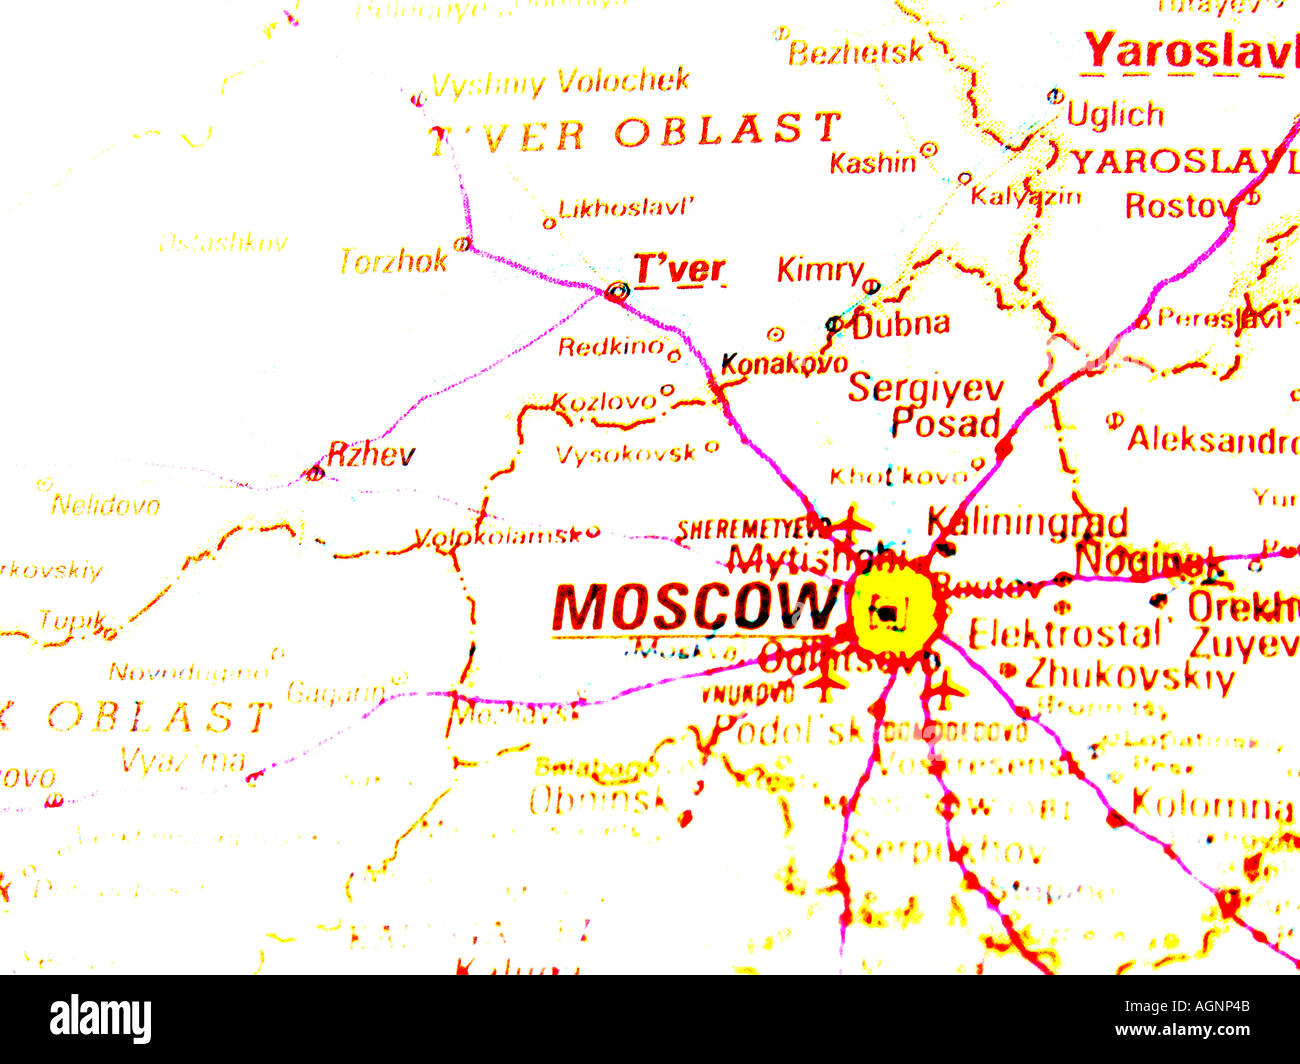 Map of Moscow Russia Stock Photo: 4653642 - Alamy